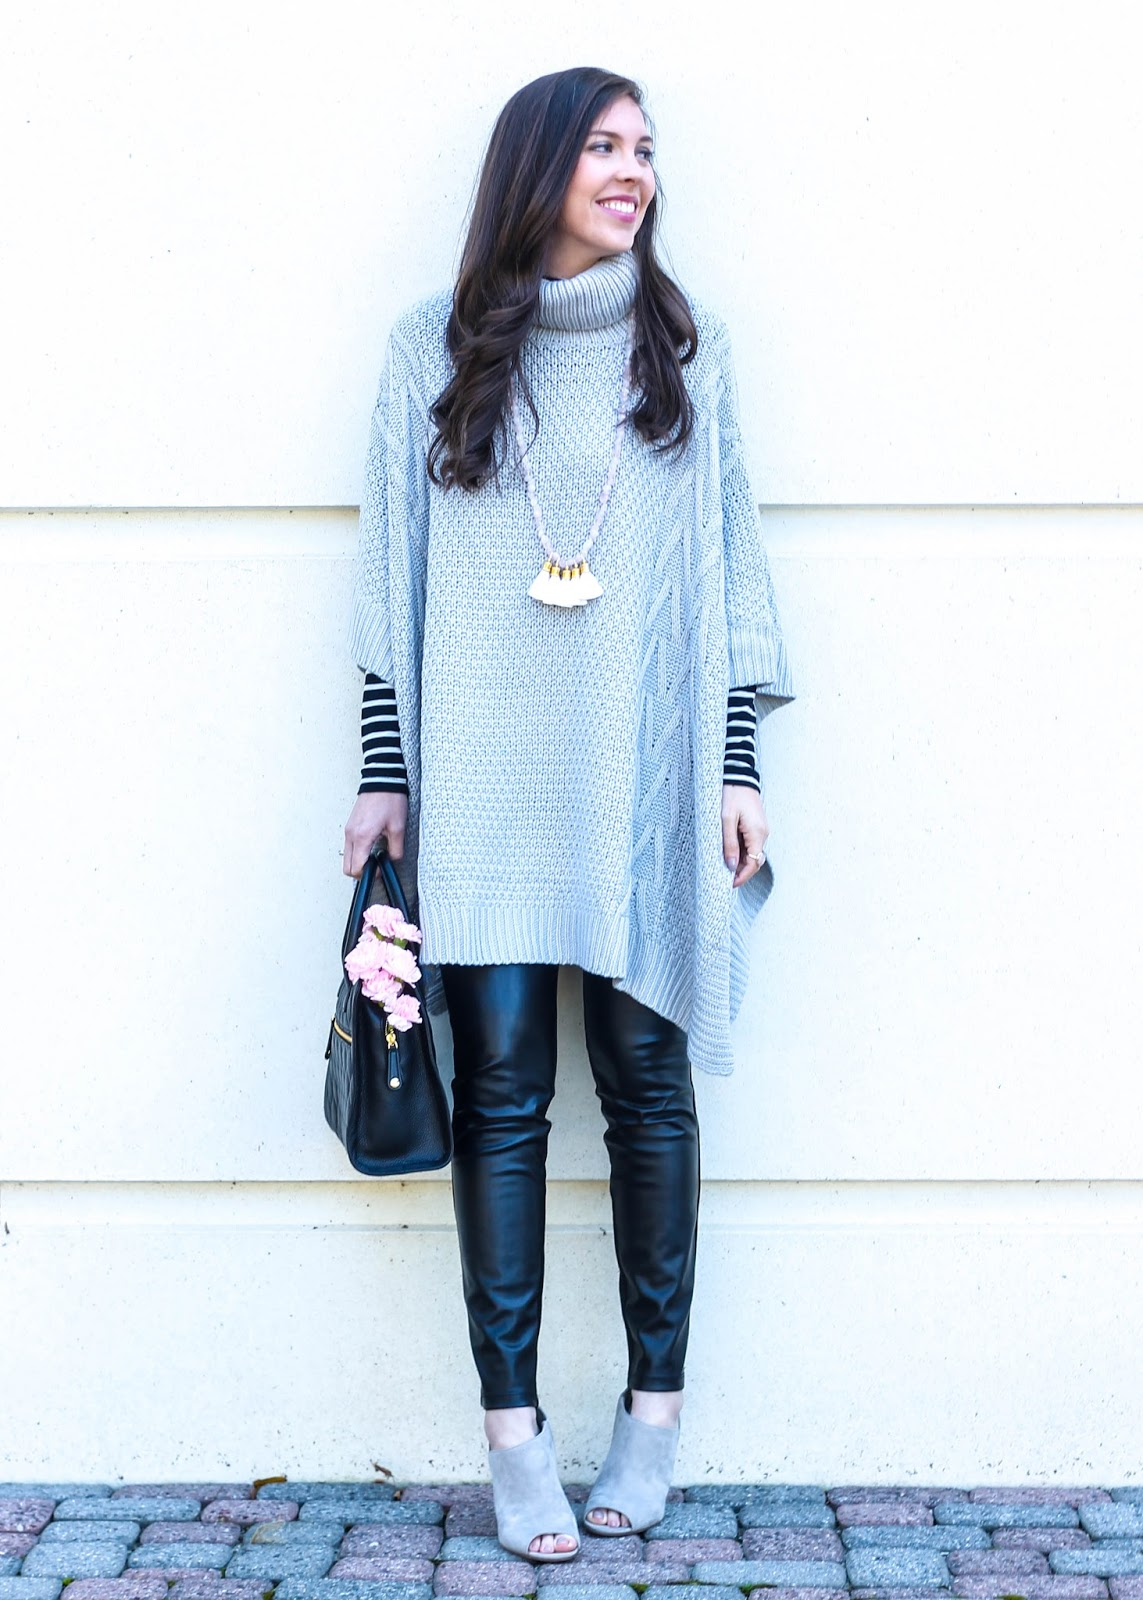 Grey Turtleneck Poncho, SheIn poncho, striped turtleneck with poncho, j crew striped turtleneck, fall outfit, fall style, fall trends, Sylvia Benson tassel necklace, Sylvia Benson jewelry, faux leather leggings, Vera Bradley quilted satchel, grey suede open toe booties, fall layers, pretty in the pines blog, pretty in the pines